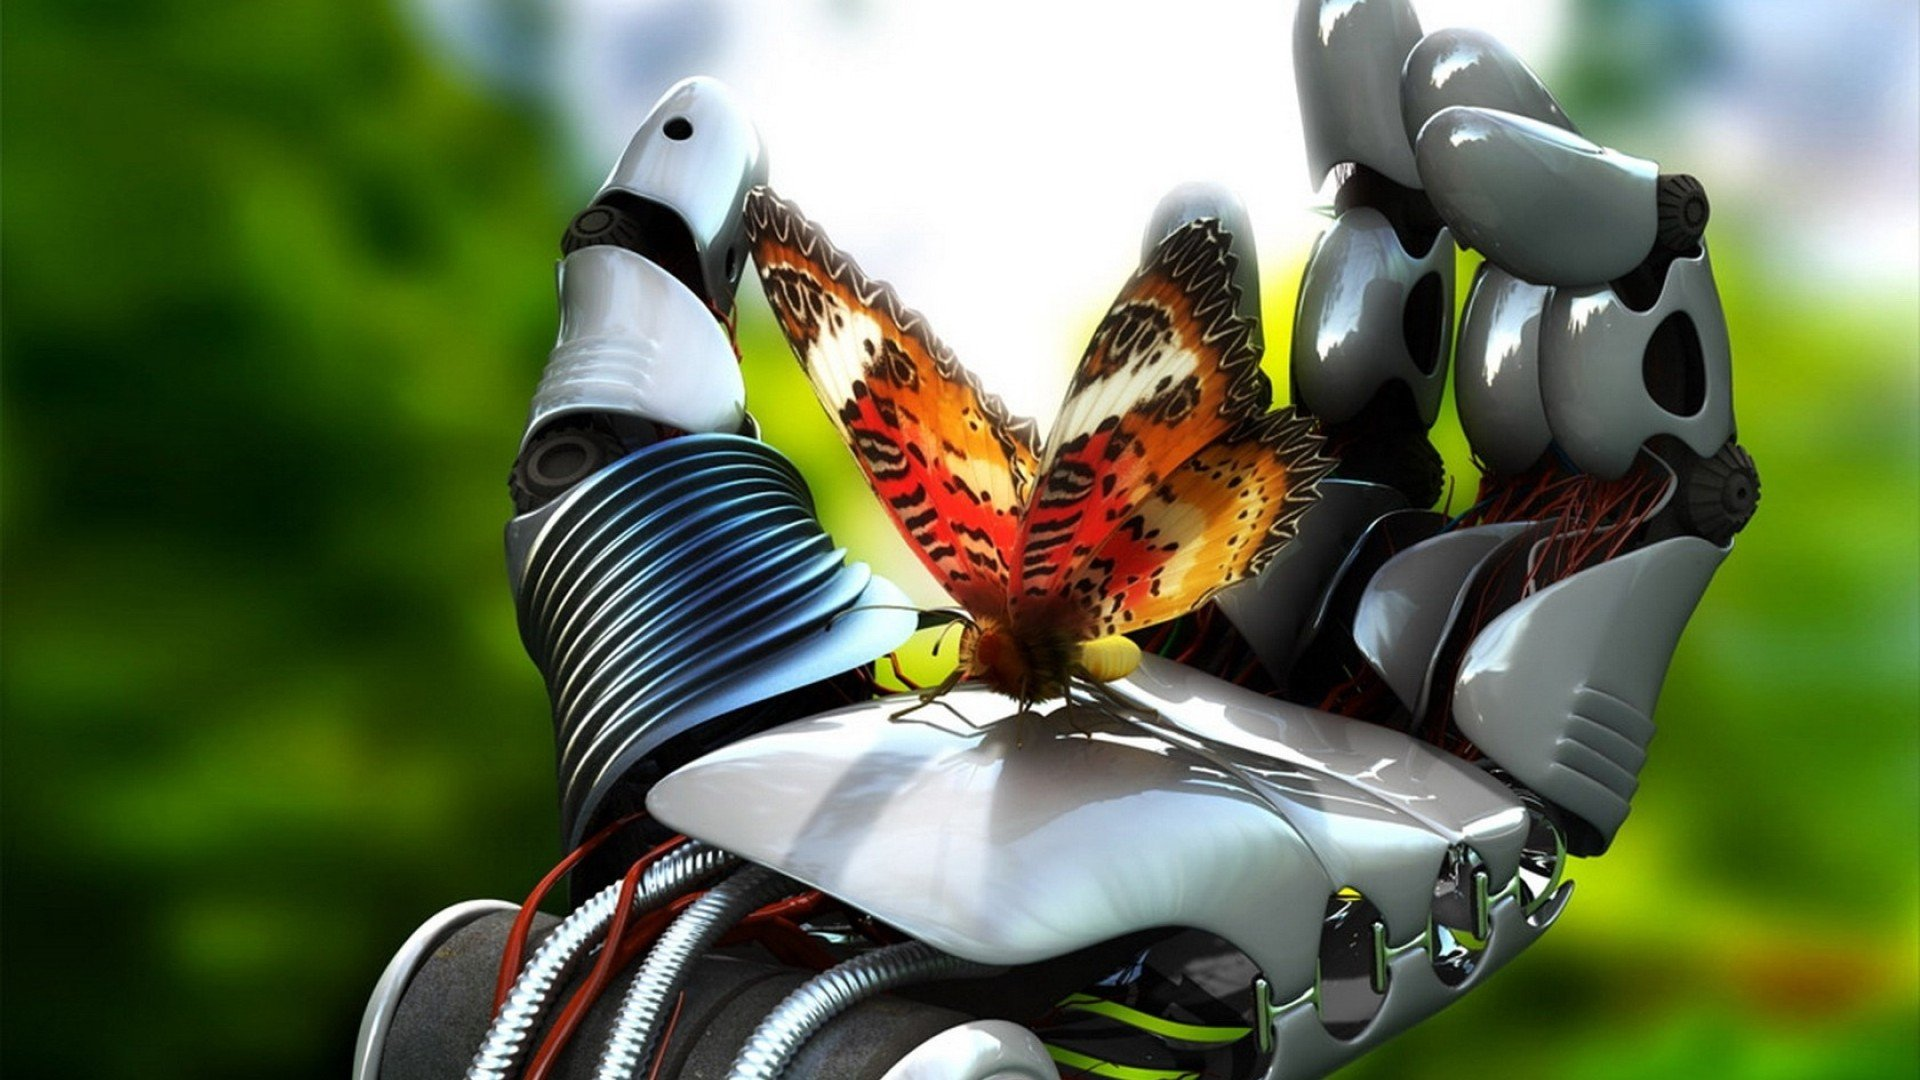 hd Wallpaper in high resolution for Get Robot Hand Butterfly hd 1920x1080